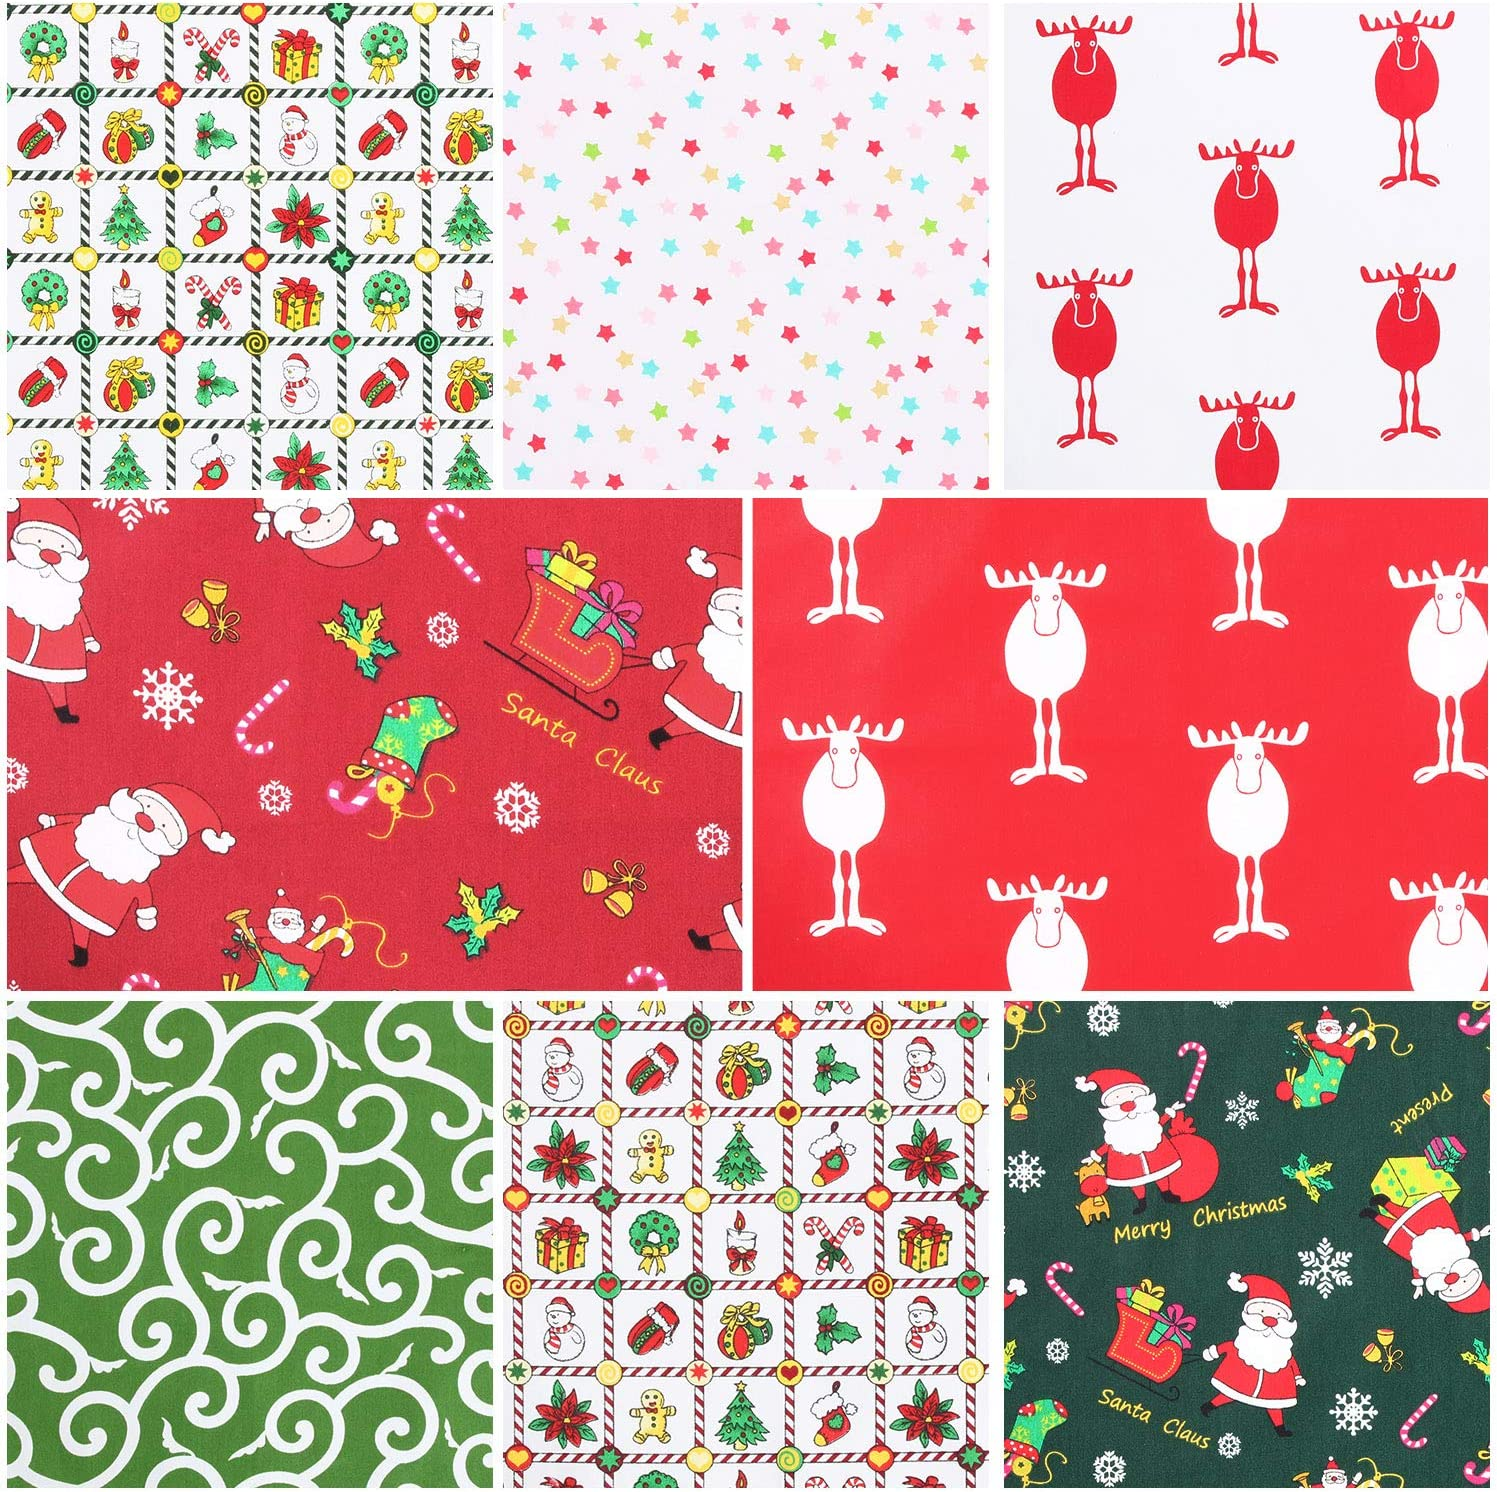 20 x 20 Inch 8 Pieces Christmas Cotton Fabric Bundles Square Sewing Precut Patchwork Printed Fabric Scraps for DIY Christmas Stocking Tree Wreath Doll Dress Apron Quilt Coaster